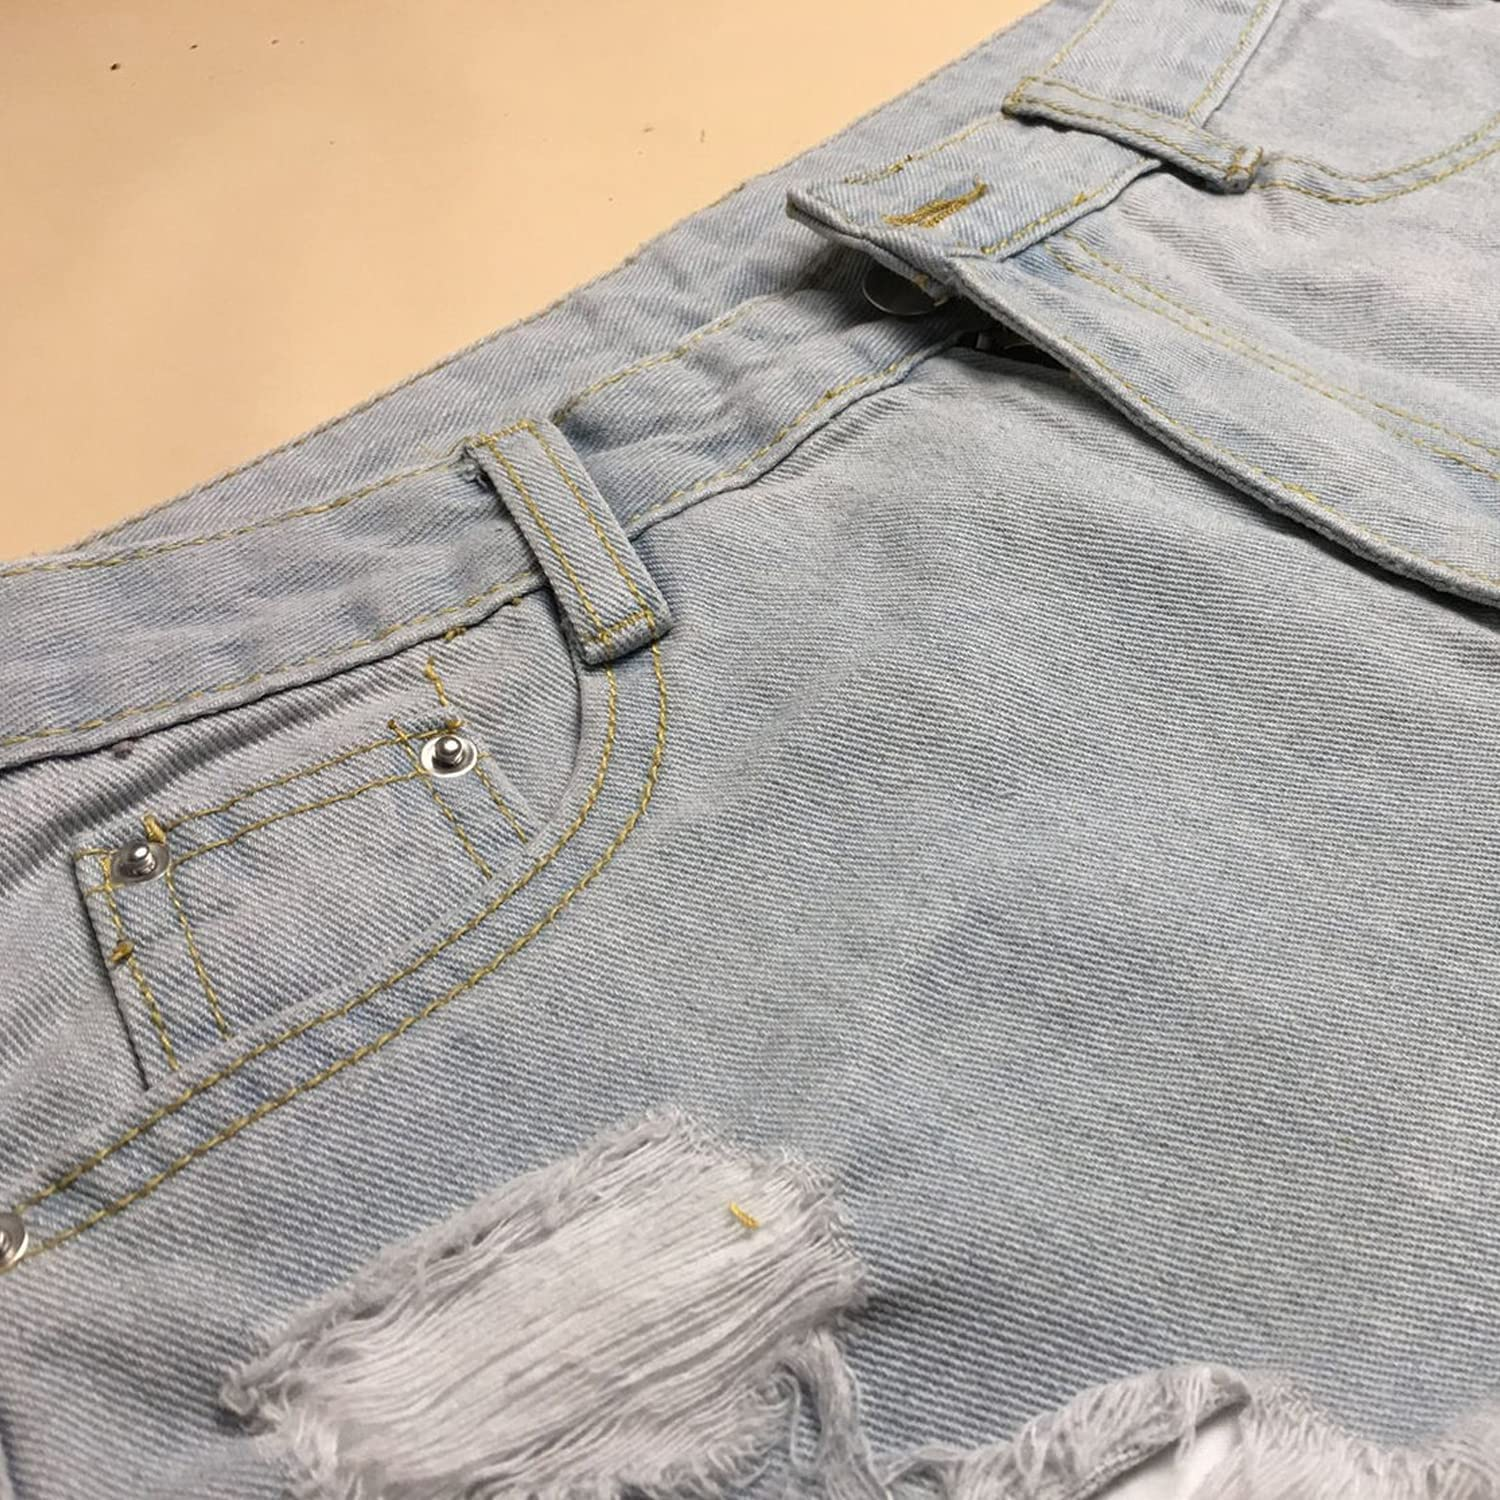 Ripped Mid Waisted Jean Shorts for Women Destroyed Hole Casual Short Jeans Distressed Frayed Summer Denim Hot Pants (Light Blue,Medium)